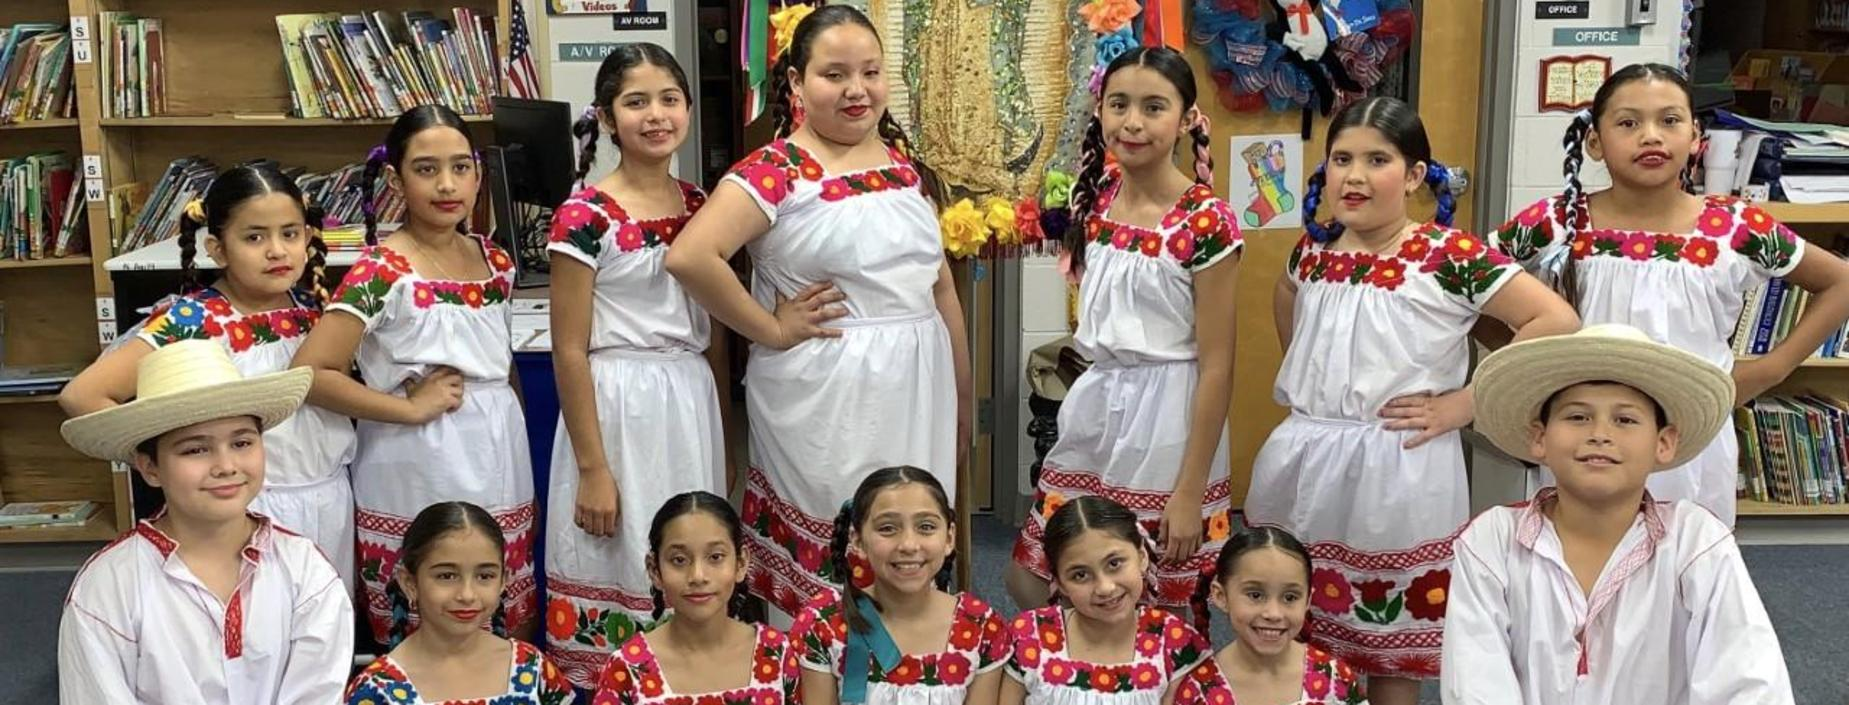 Image of Folklorico students.